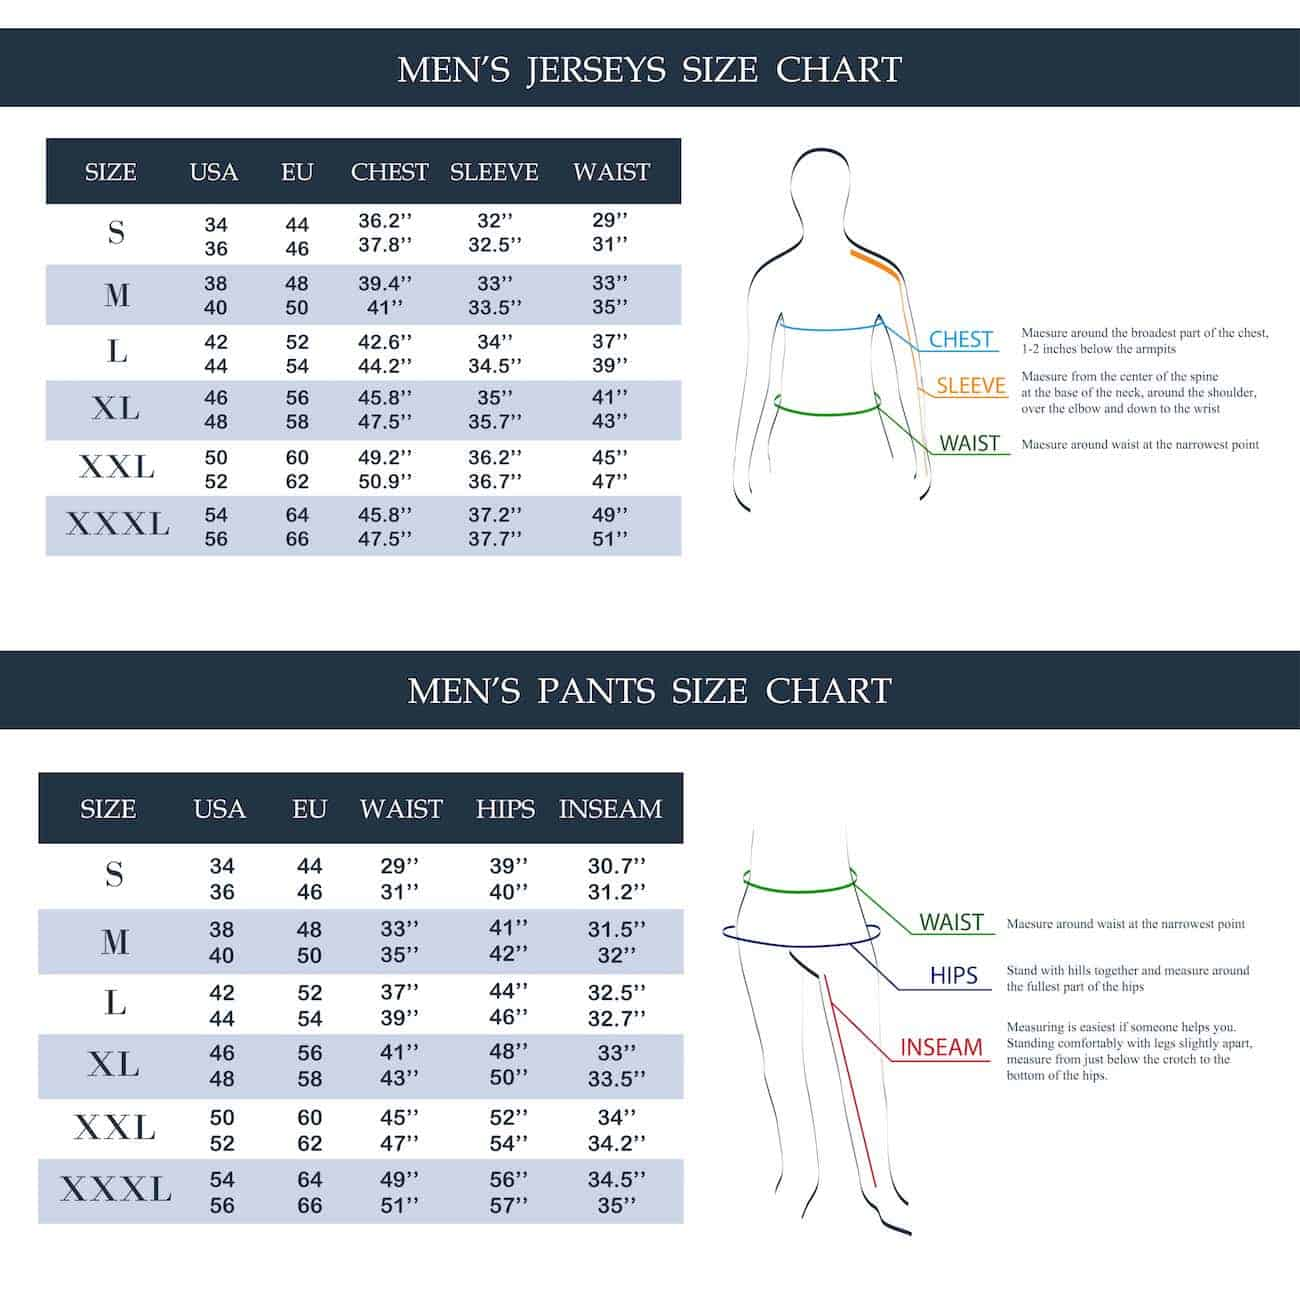 Chart setting out mens' pant sizes